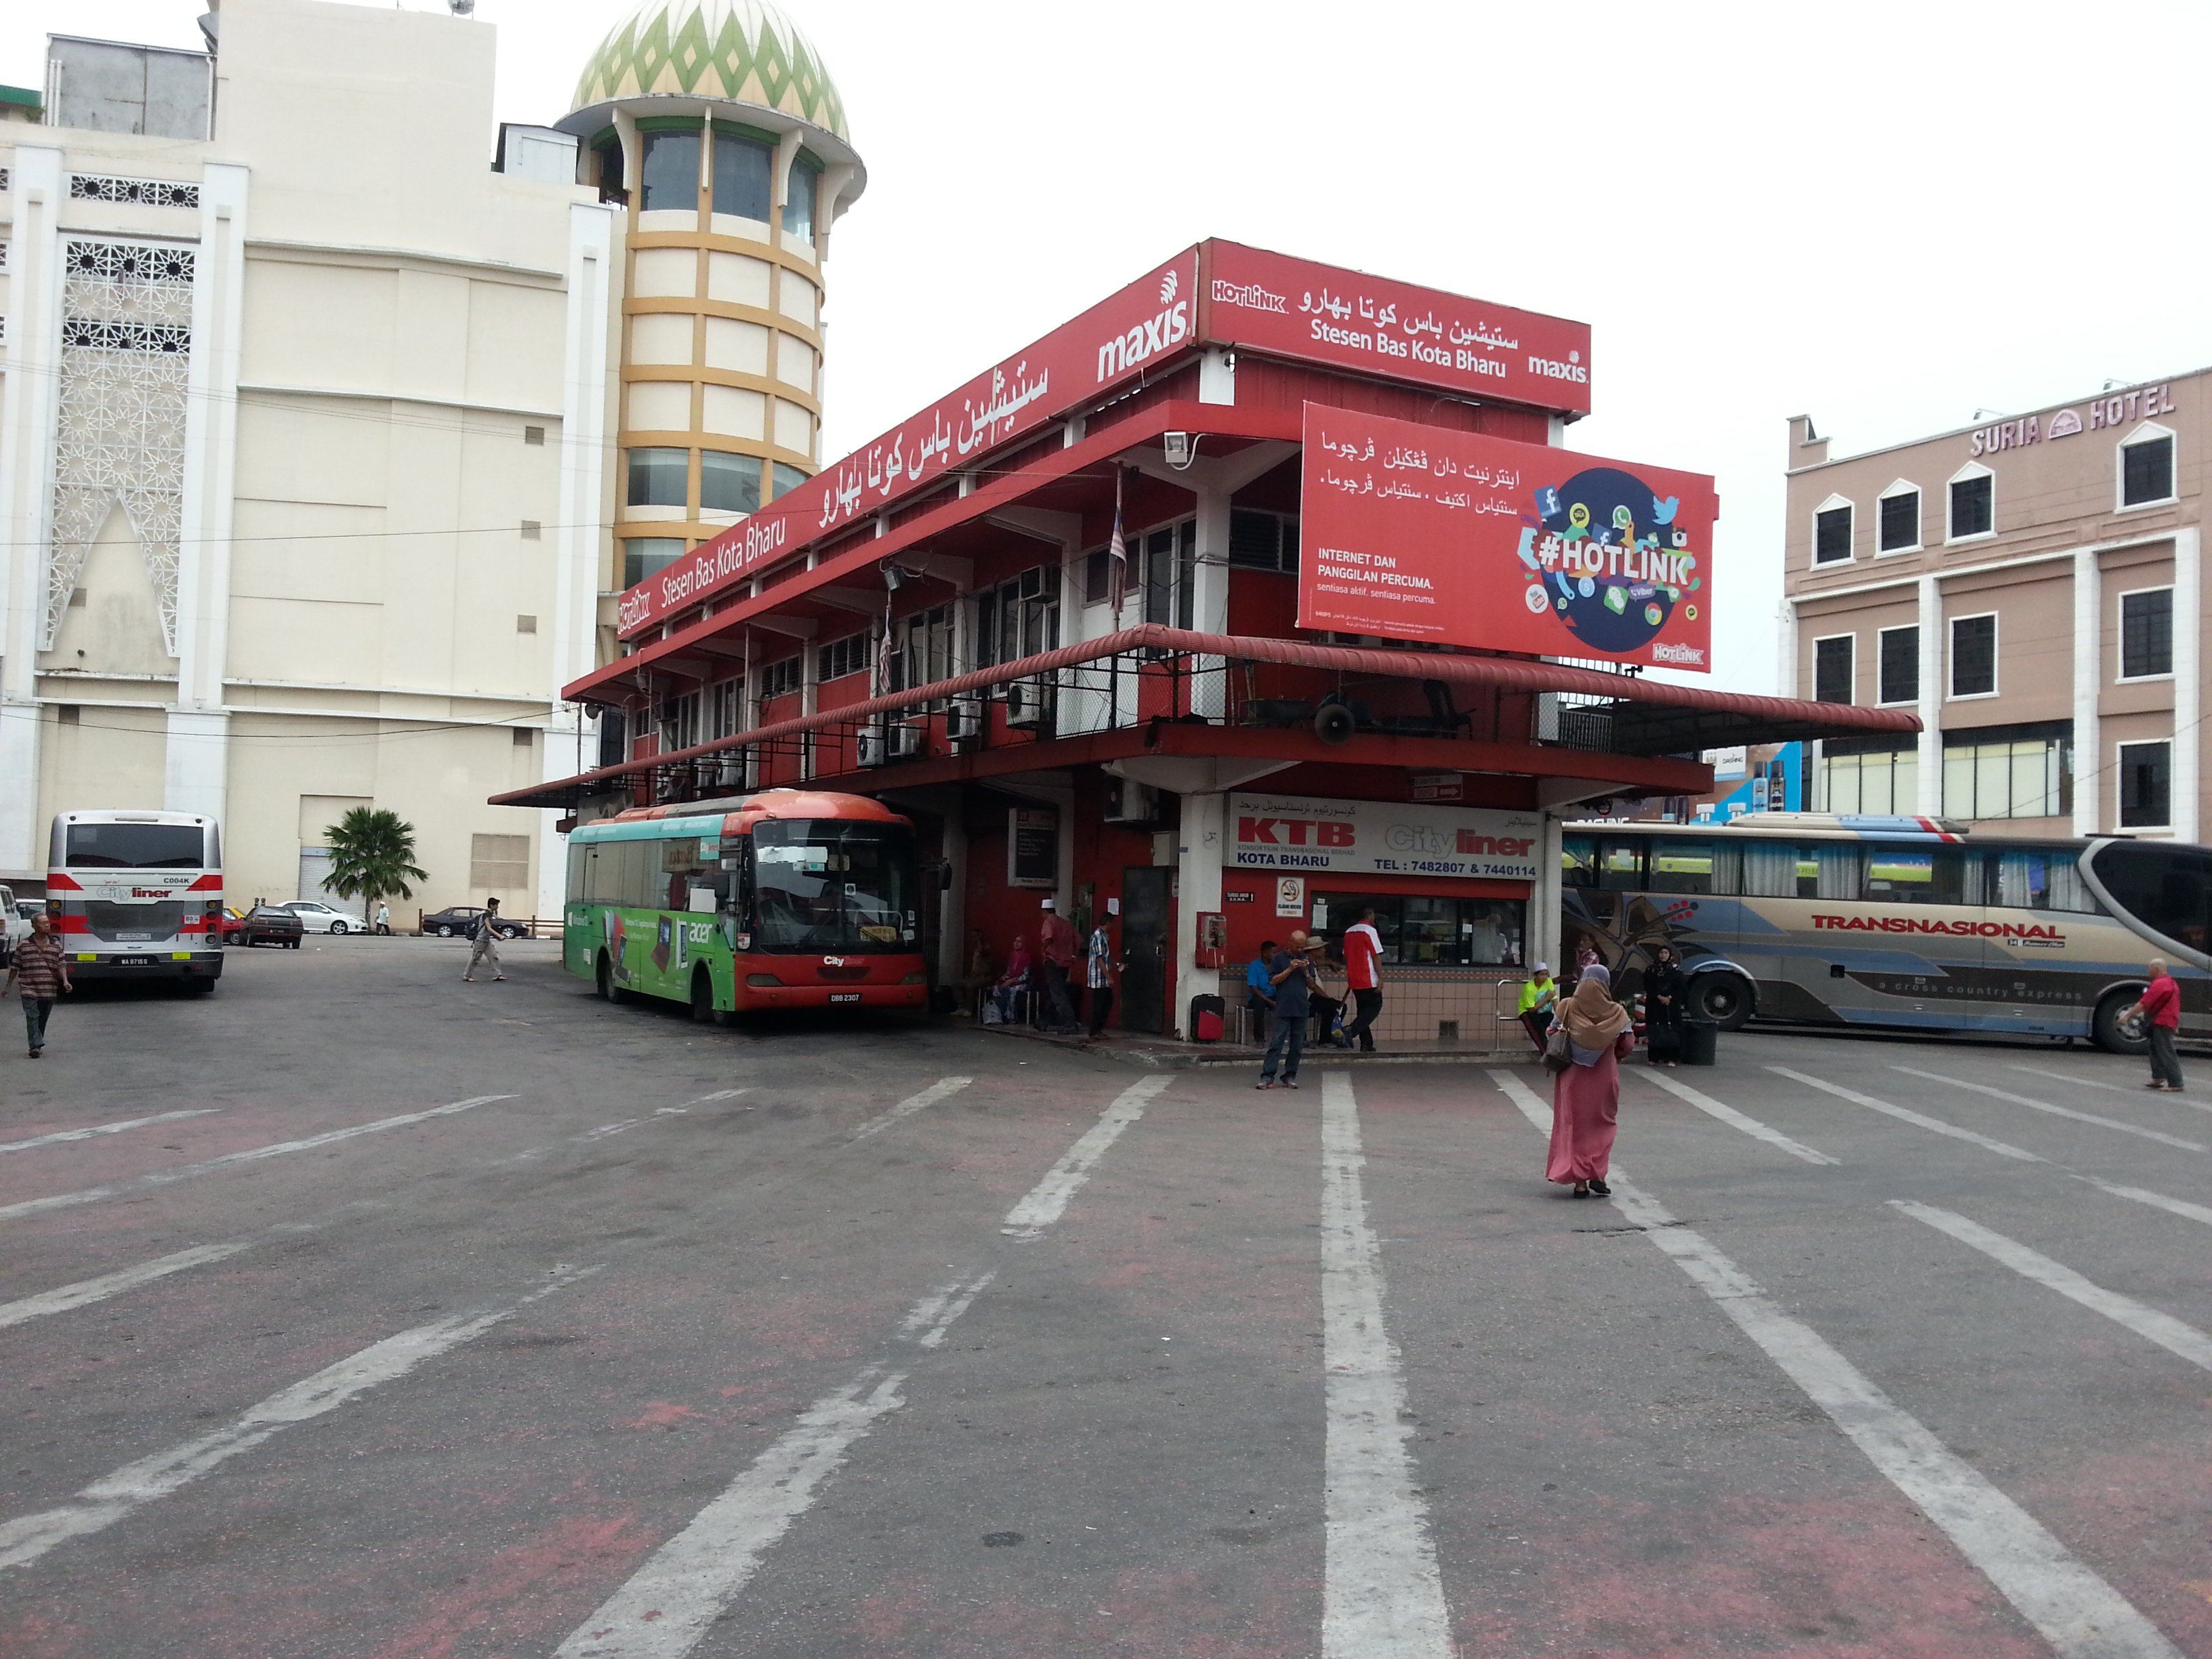 Town centre bus station in Kota Bharu